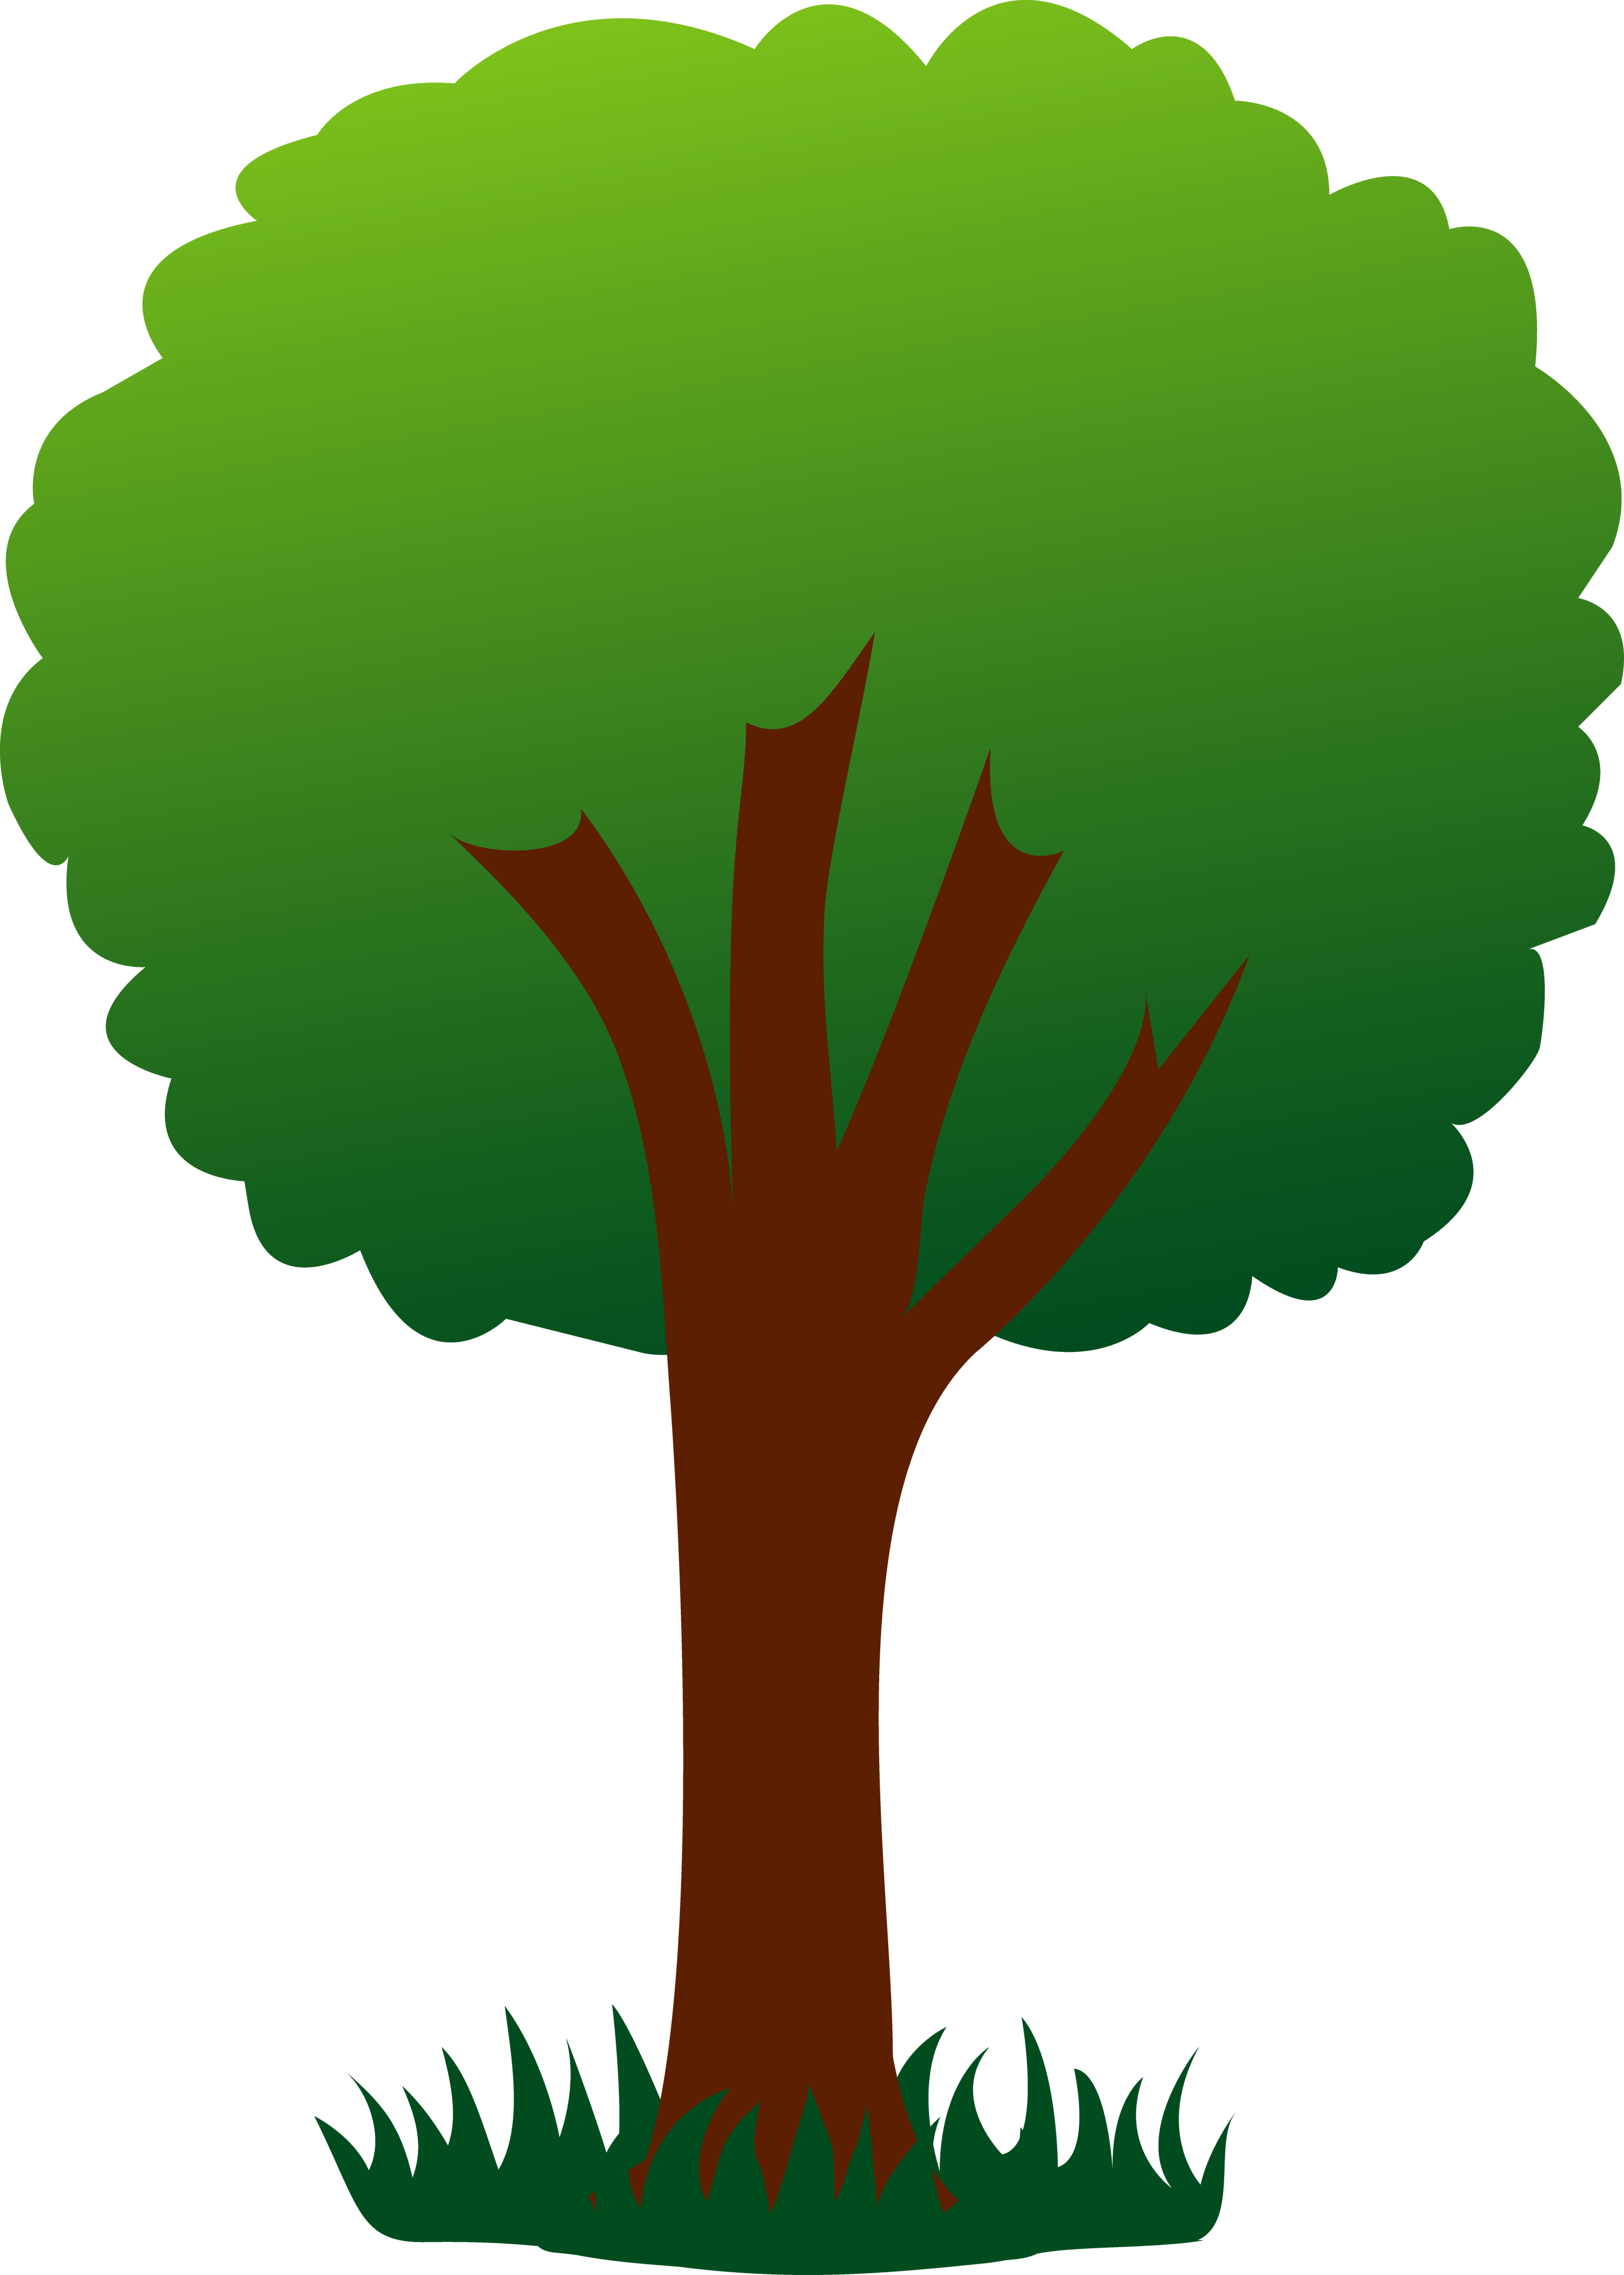 See clipart tree grass #3